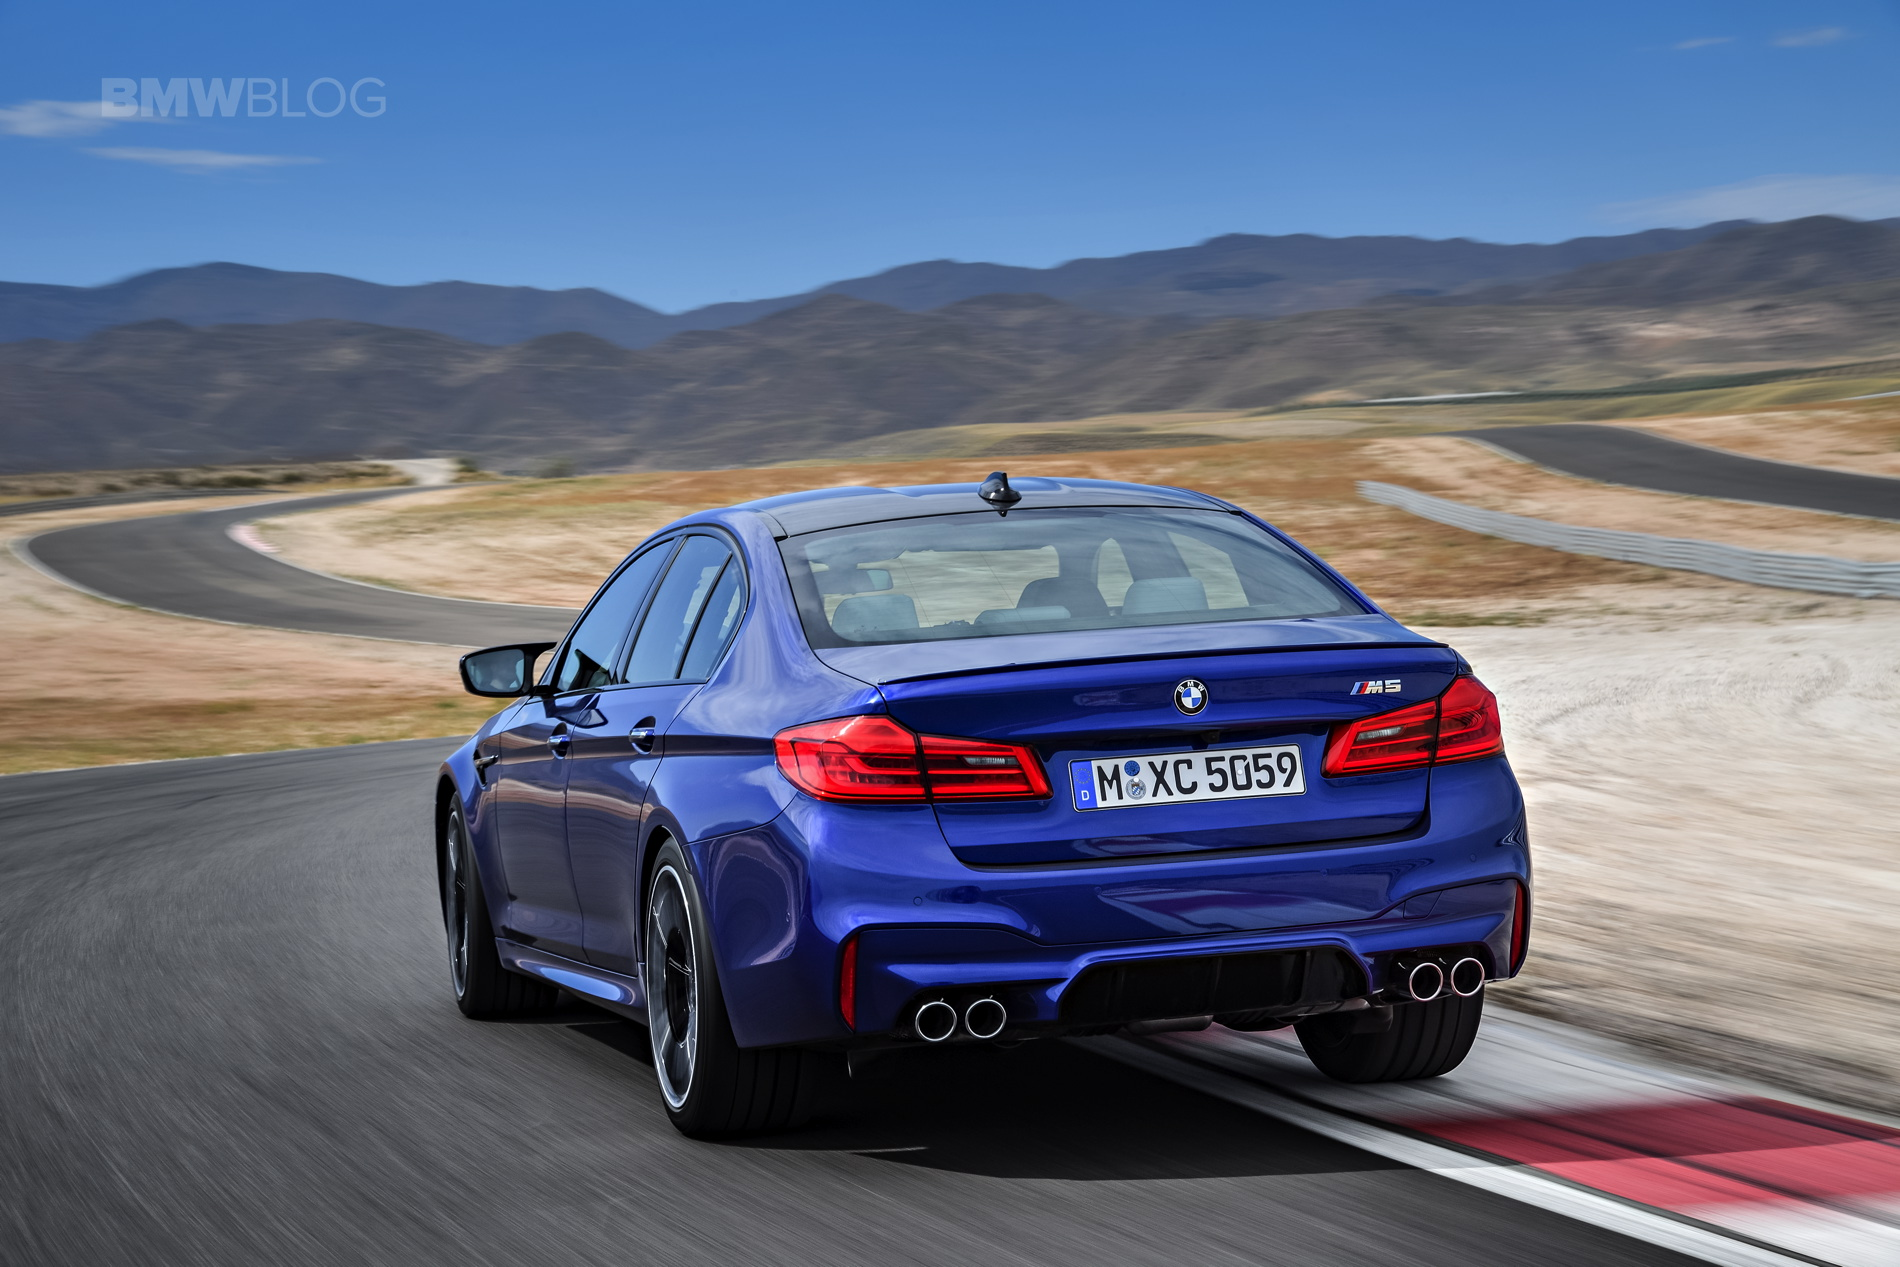 38 The 2020 BMW M5 Xdrive Awd Performance